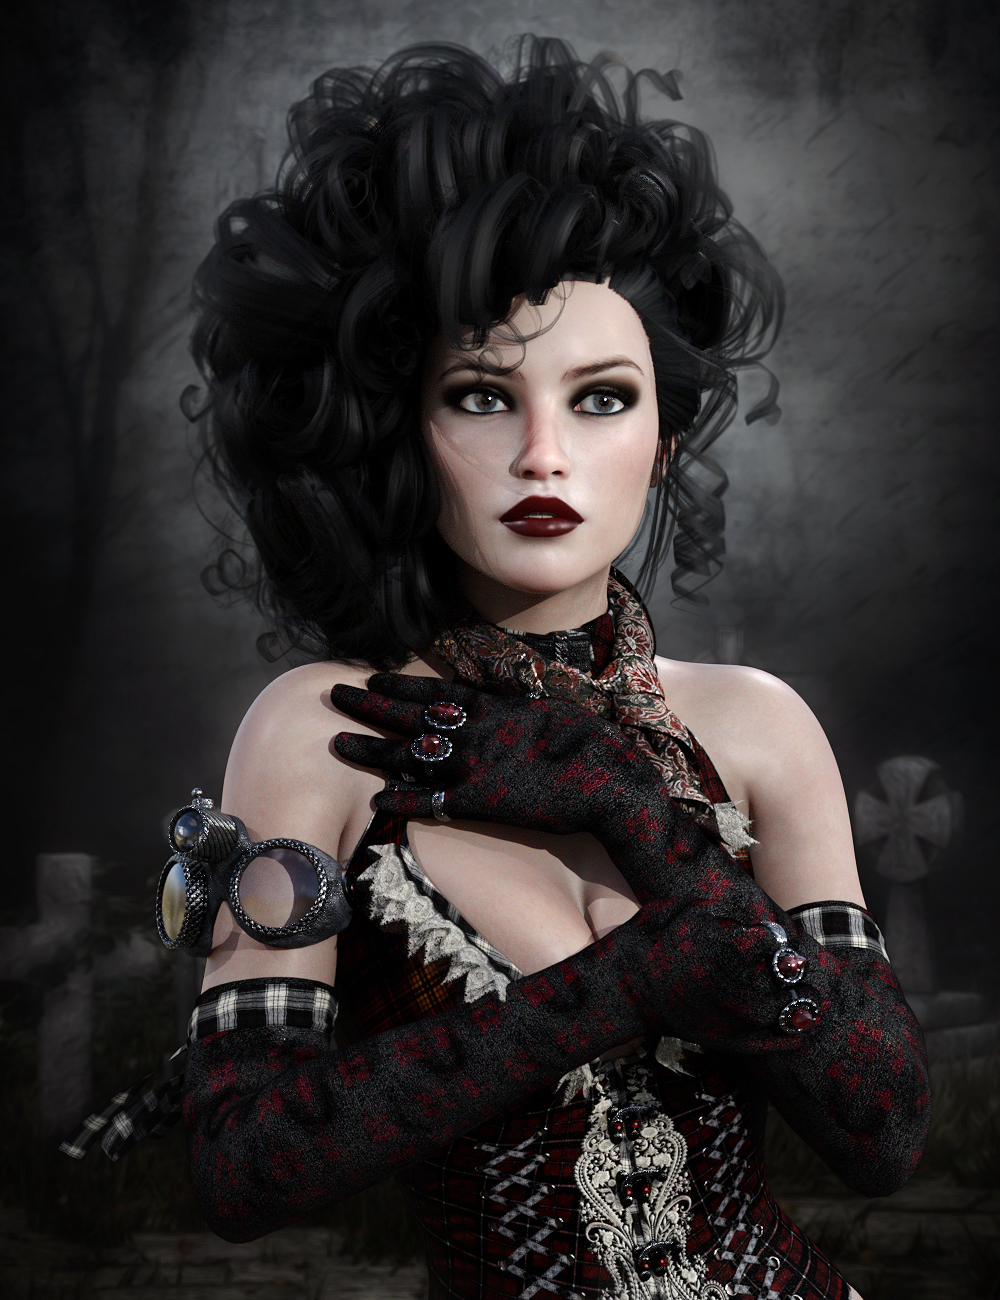 Gothy Aryabella by Propschick